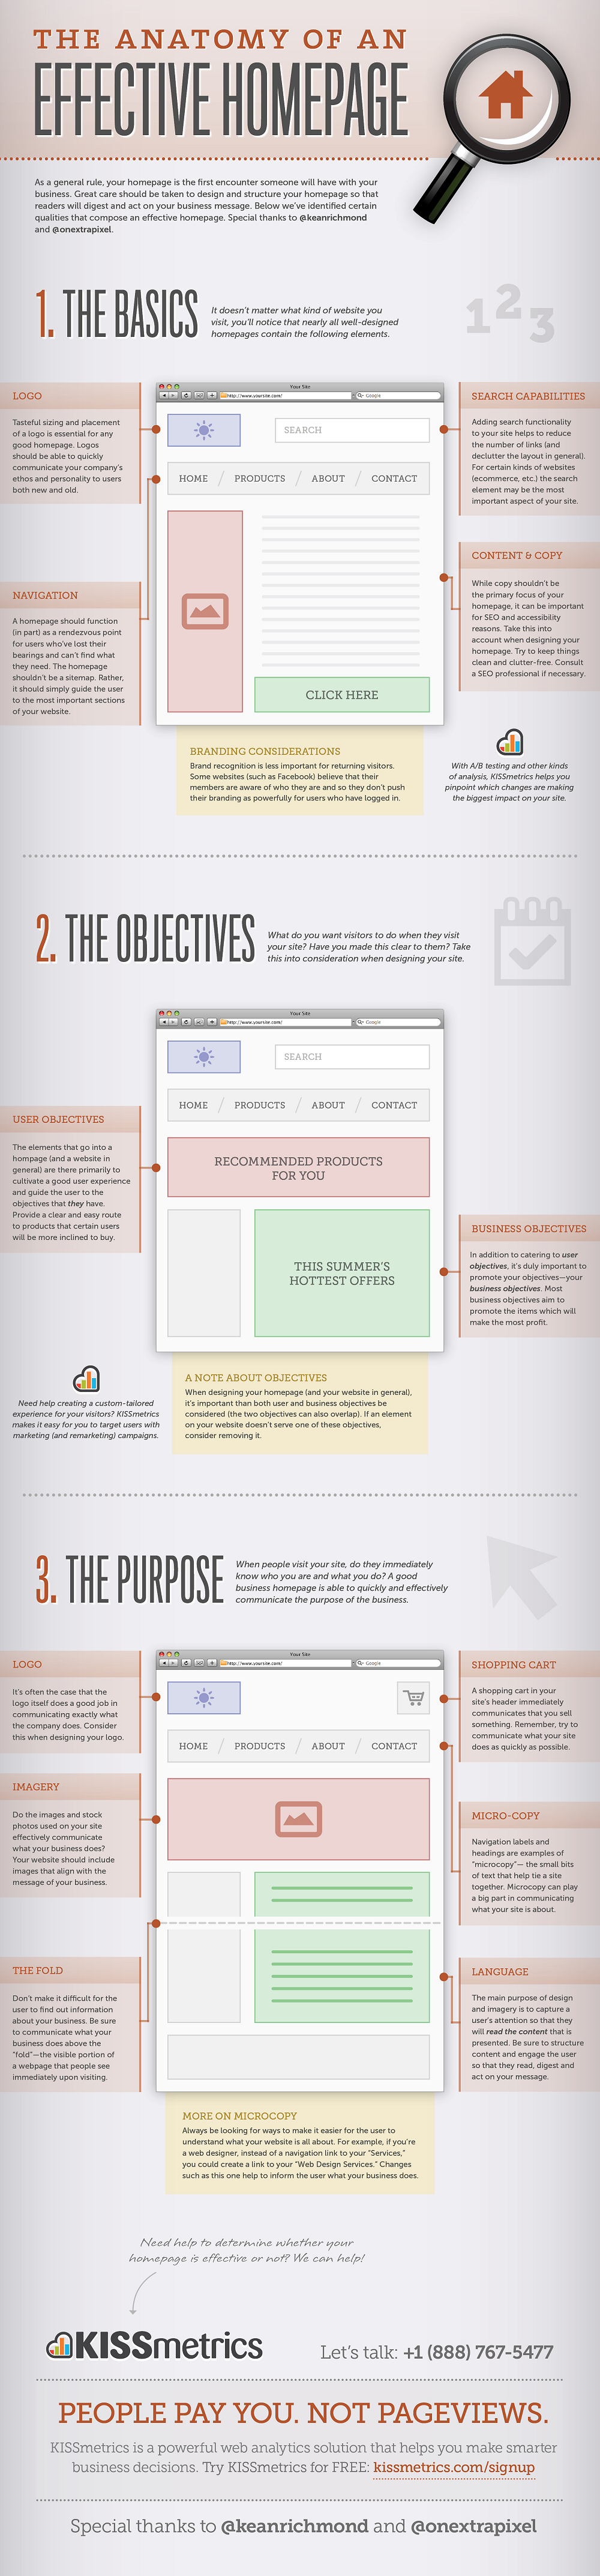 the-anatomy-of-an-effective-homepage